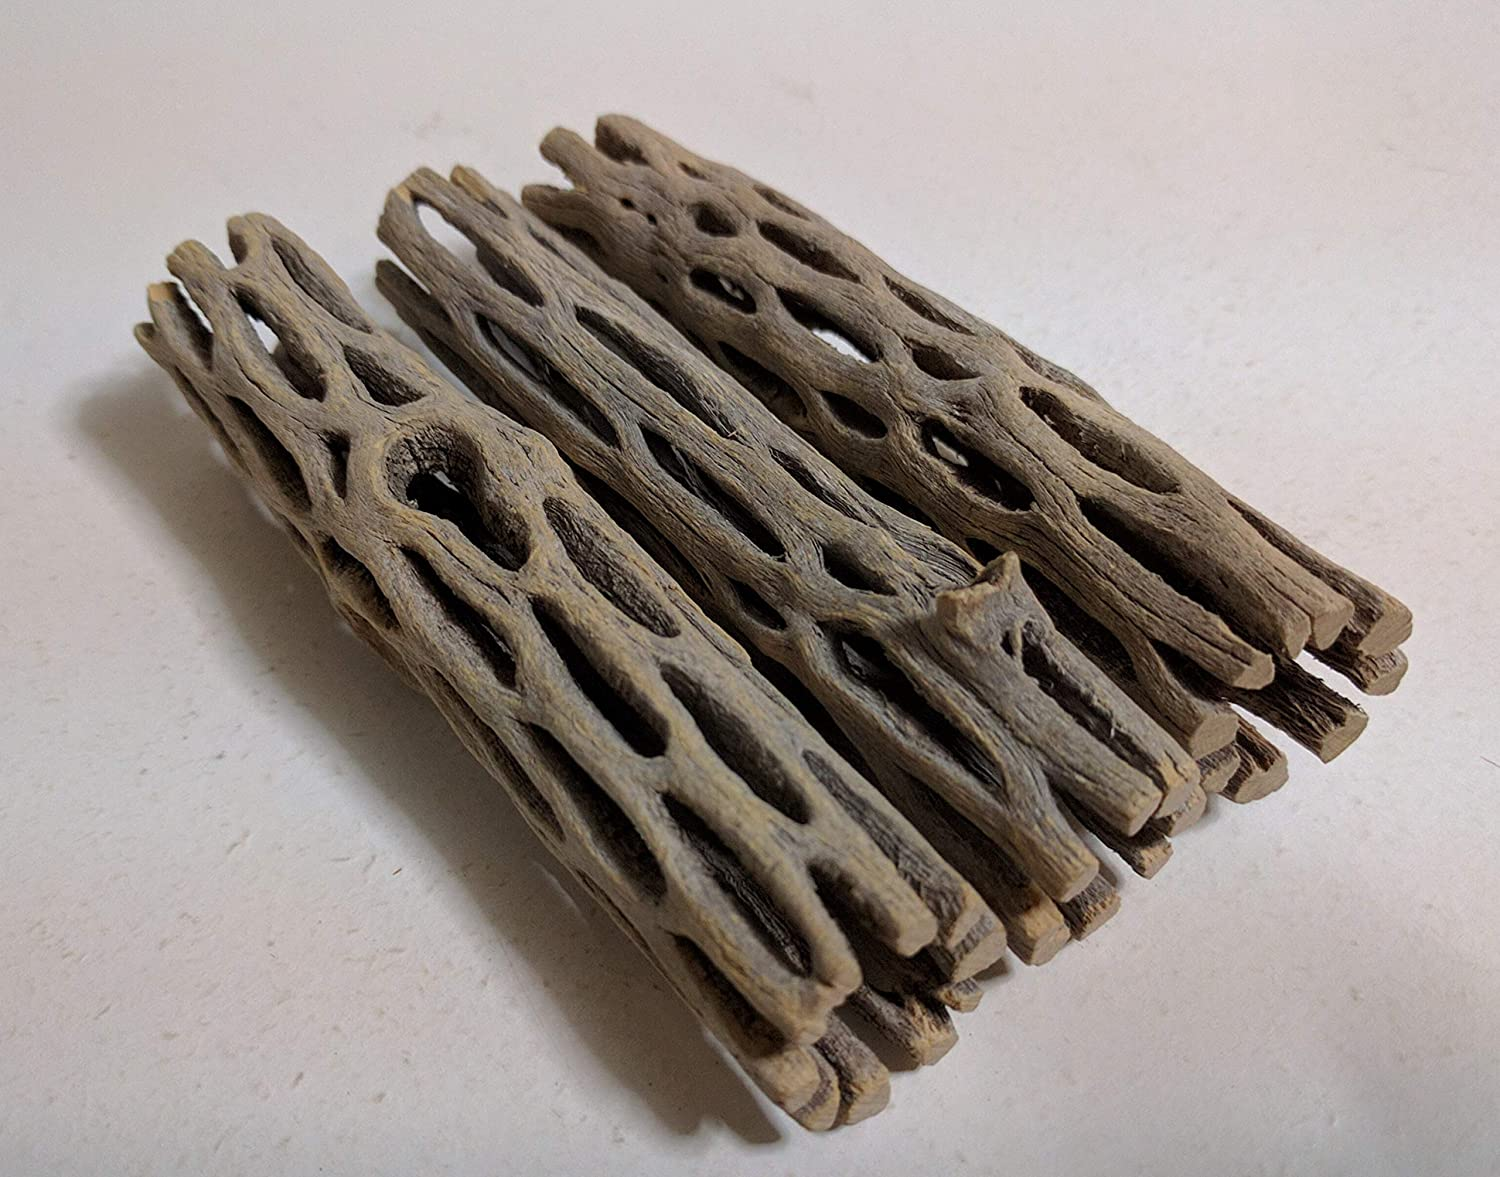 Shrimp Small Natural Cholla Wood for Aquarium Decoration 3 Pieces 4 inches Long Hermit Crab Chew Toys for Small Pets